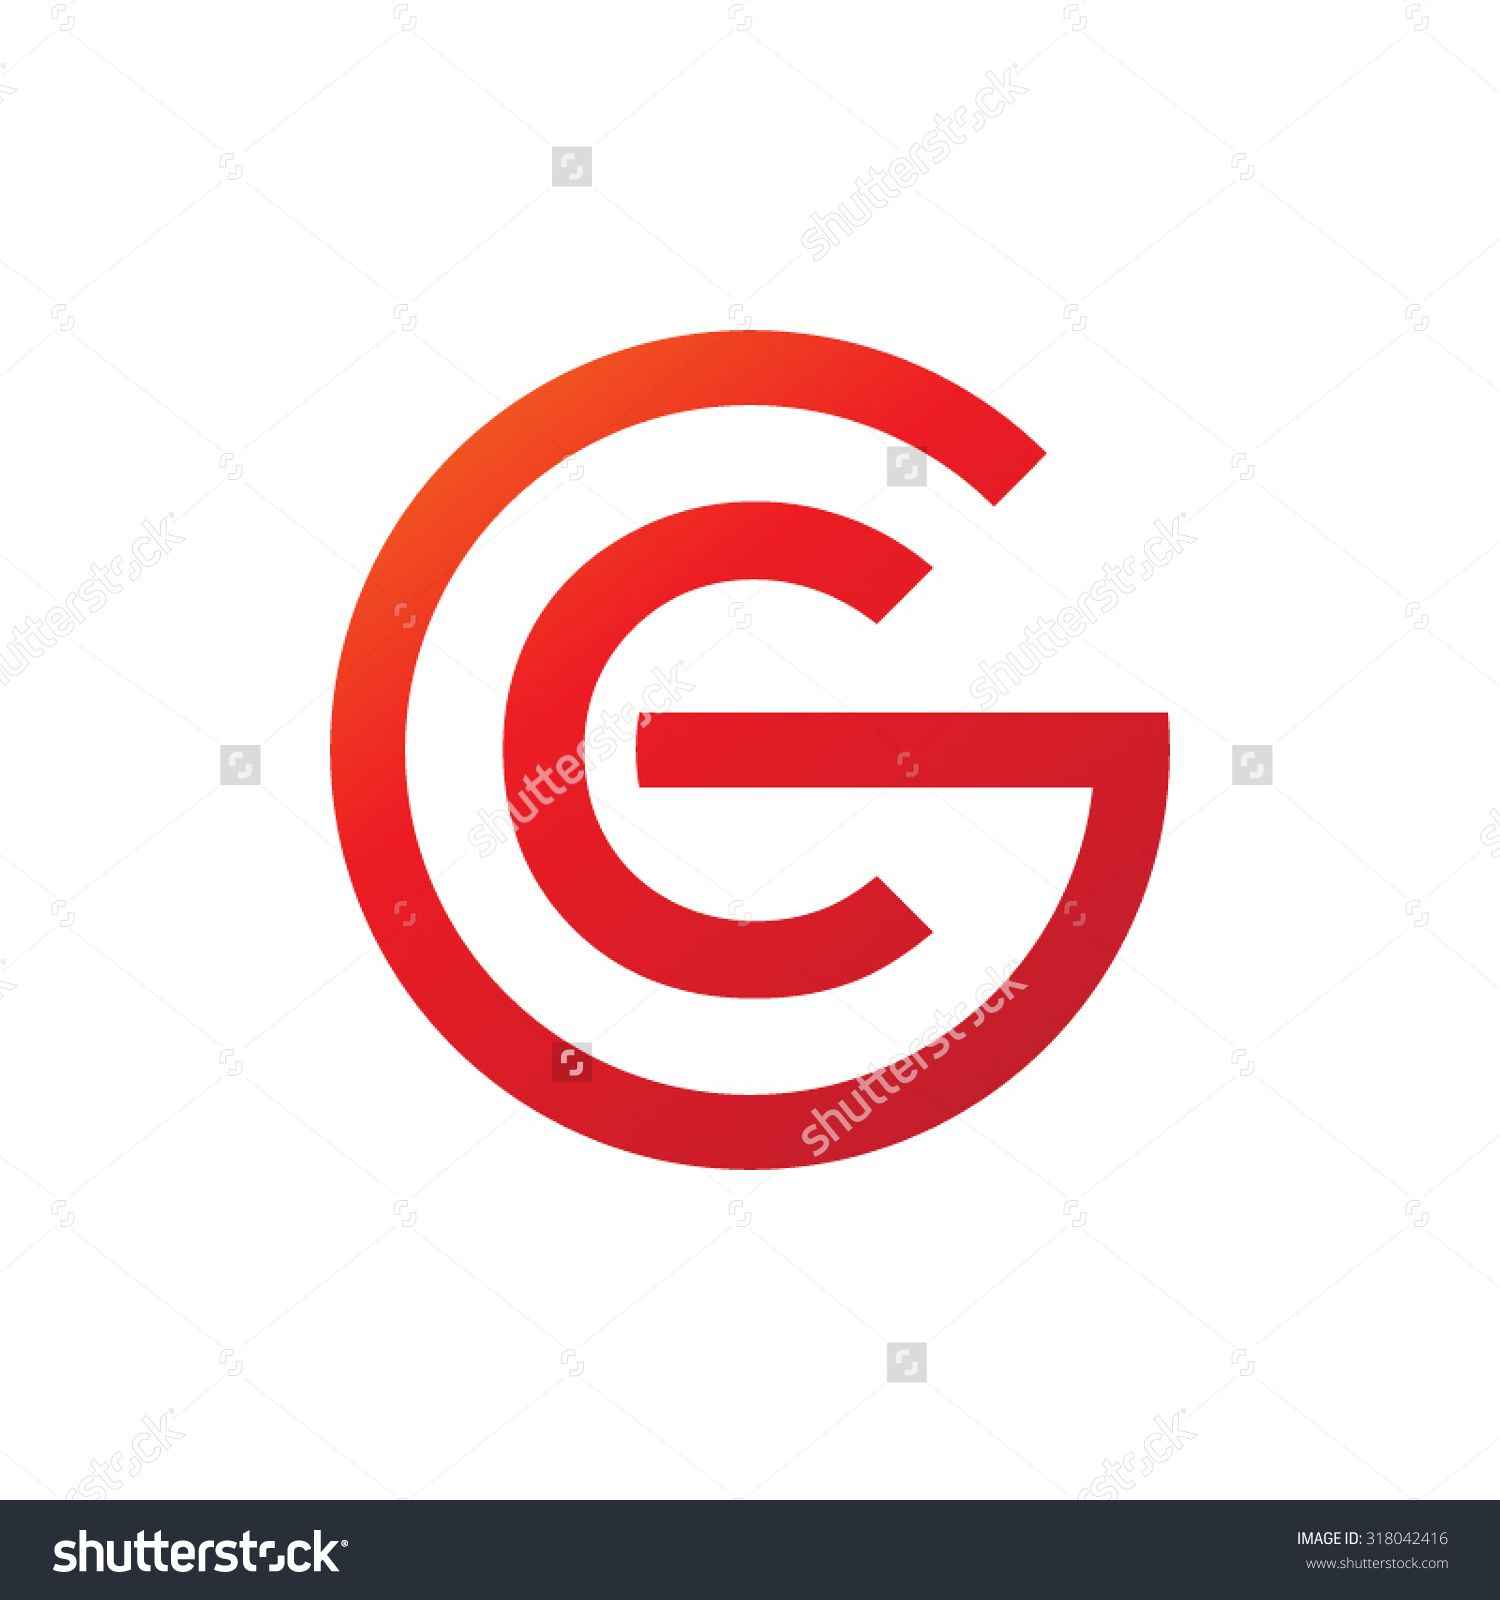 Logos Design With Letter Gc